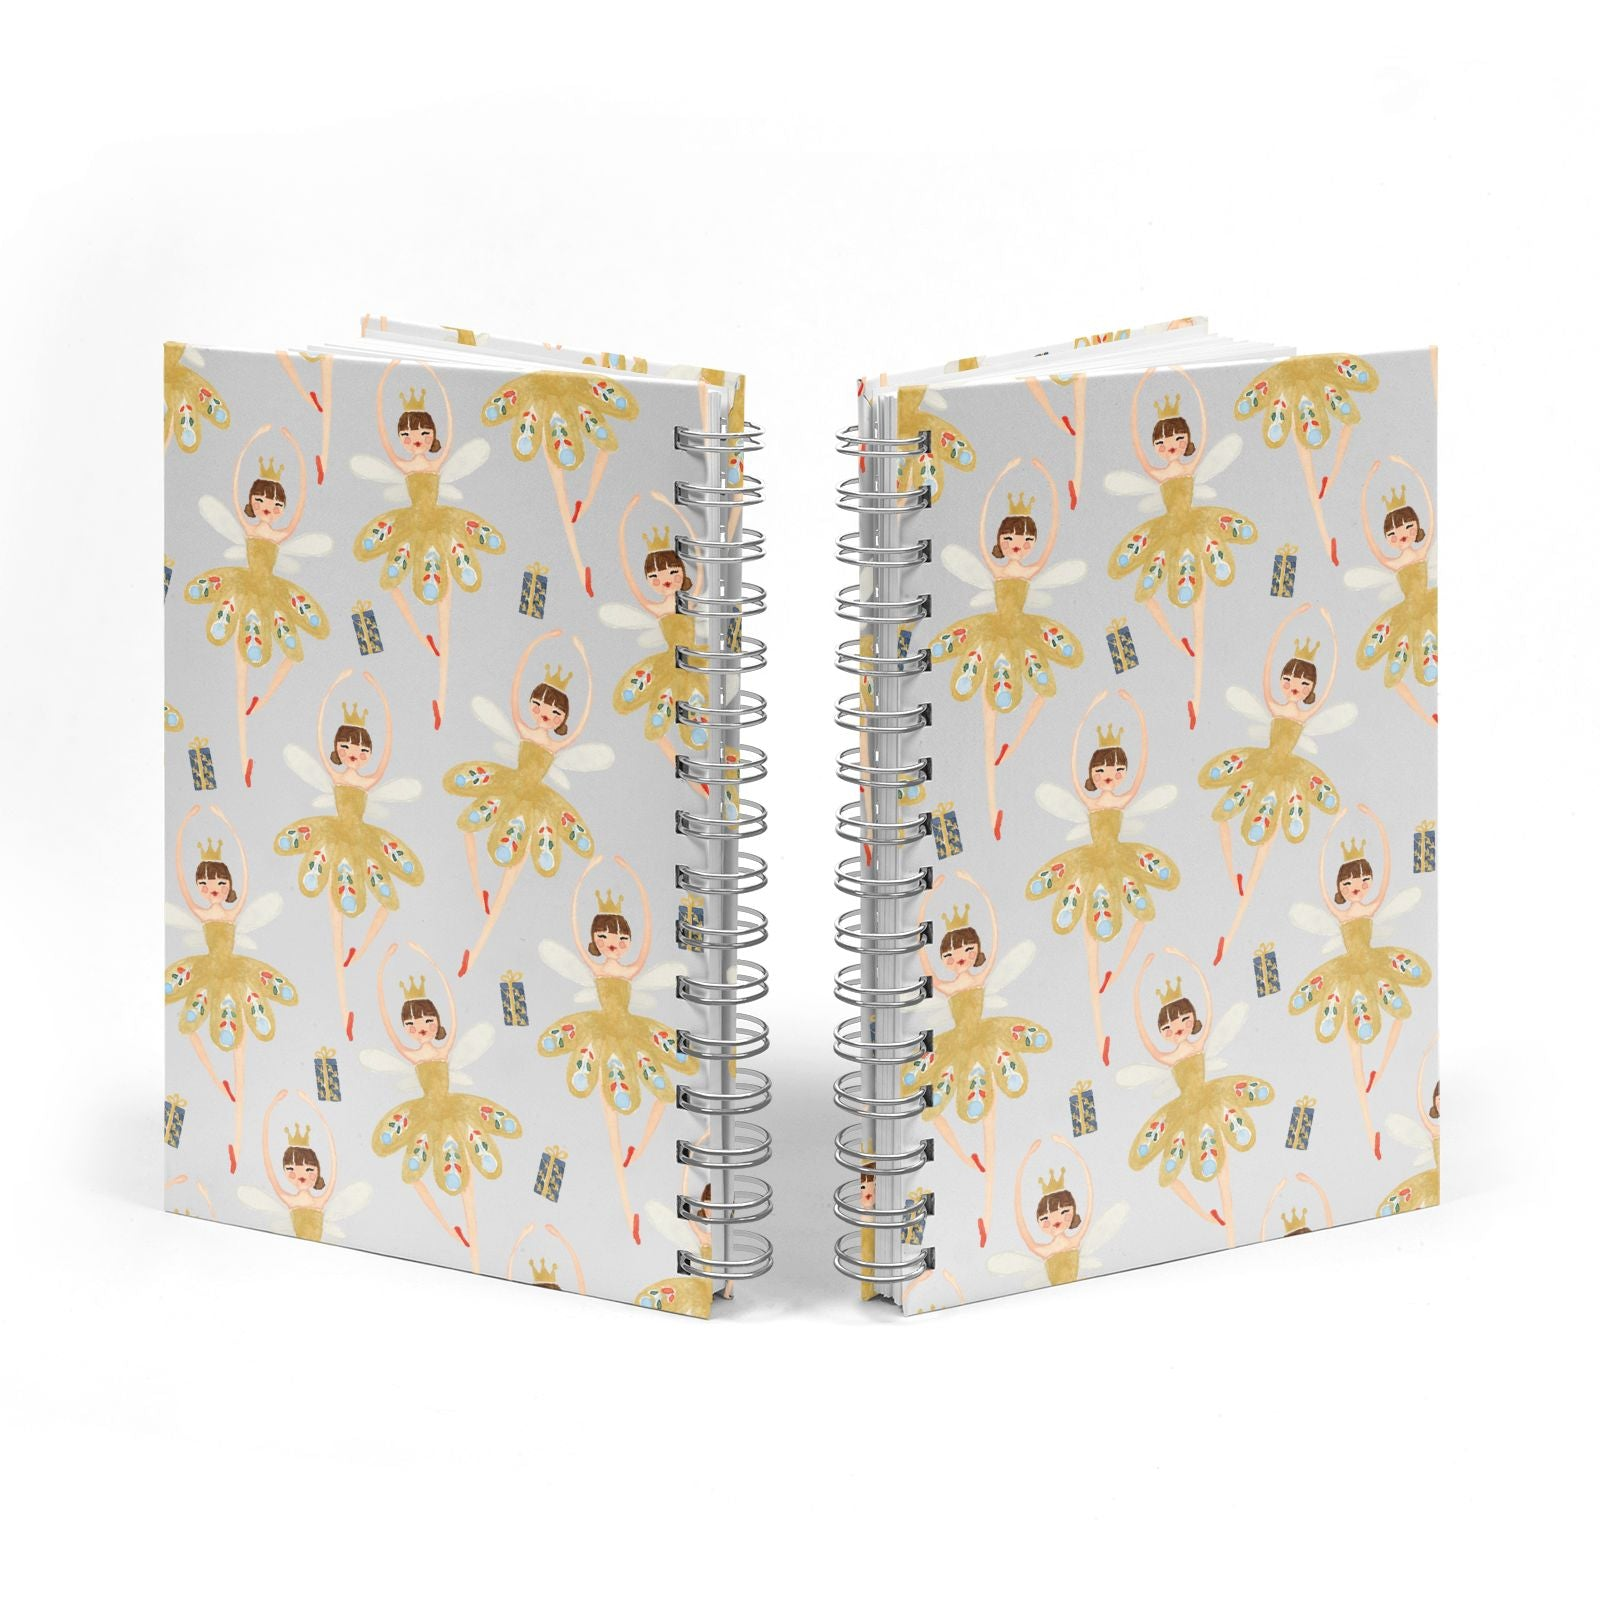 Dancing ballerina princess Notebook with Silver Coil Spine View